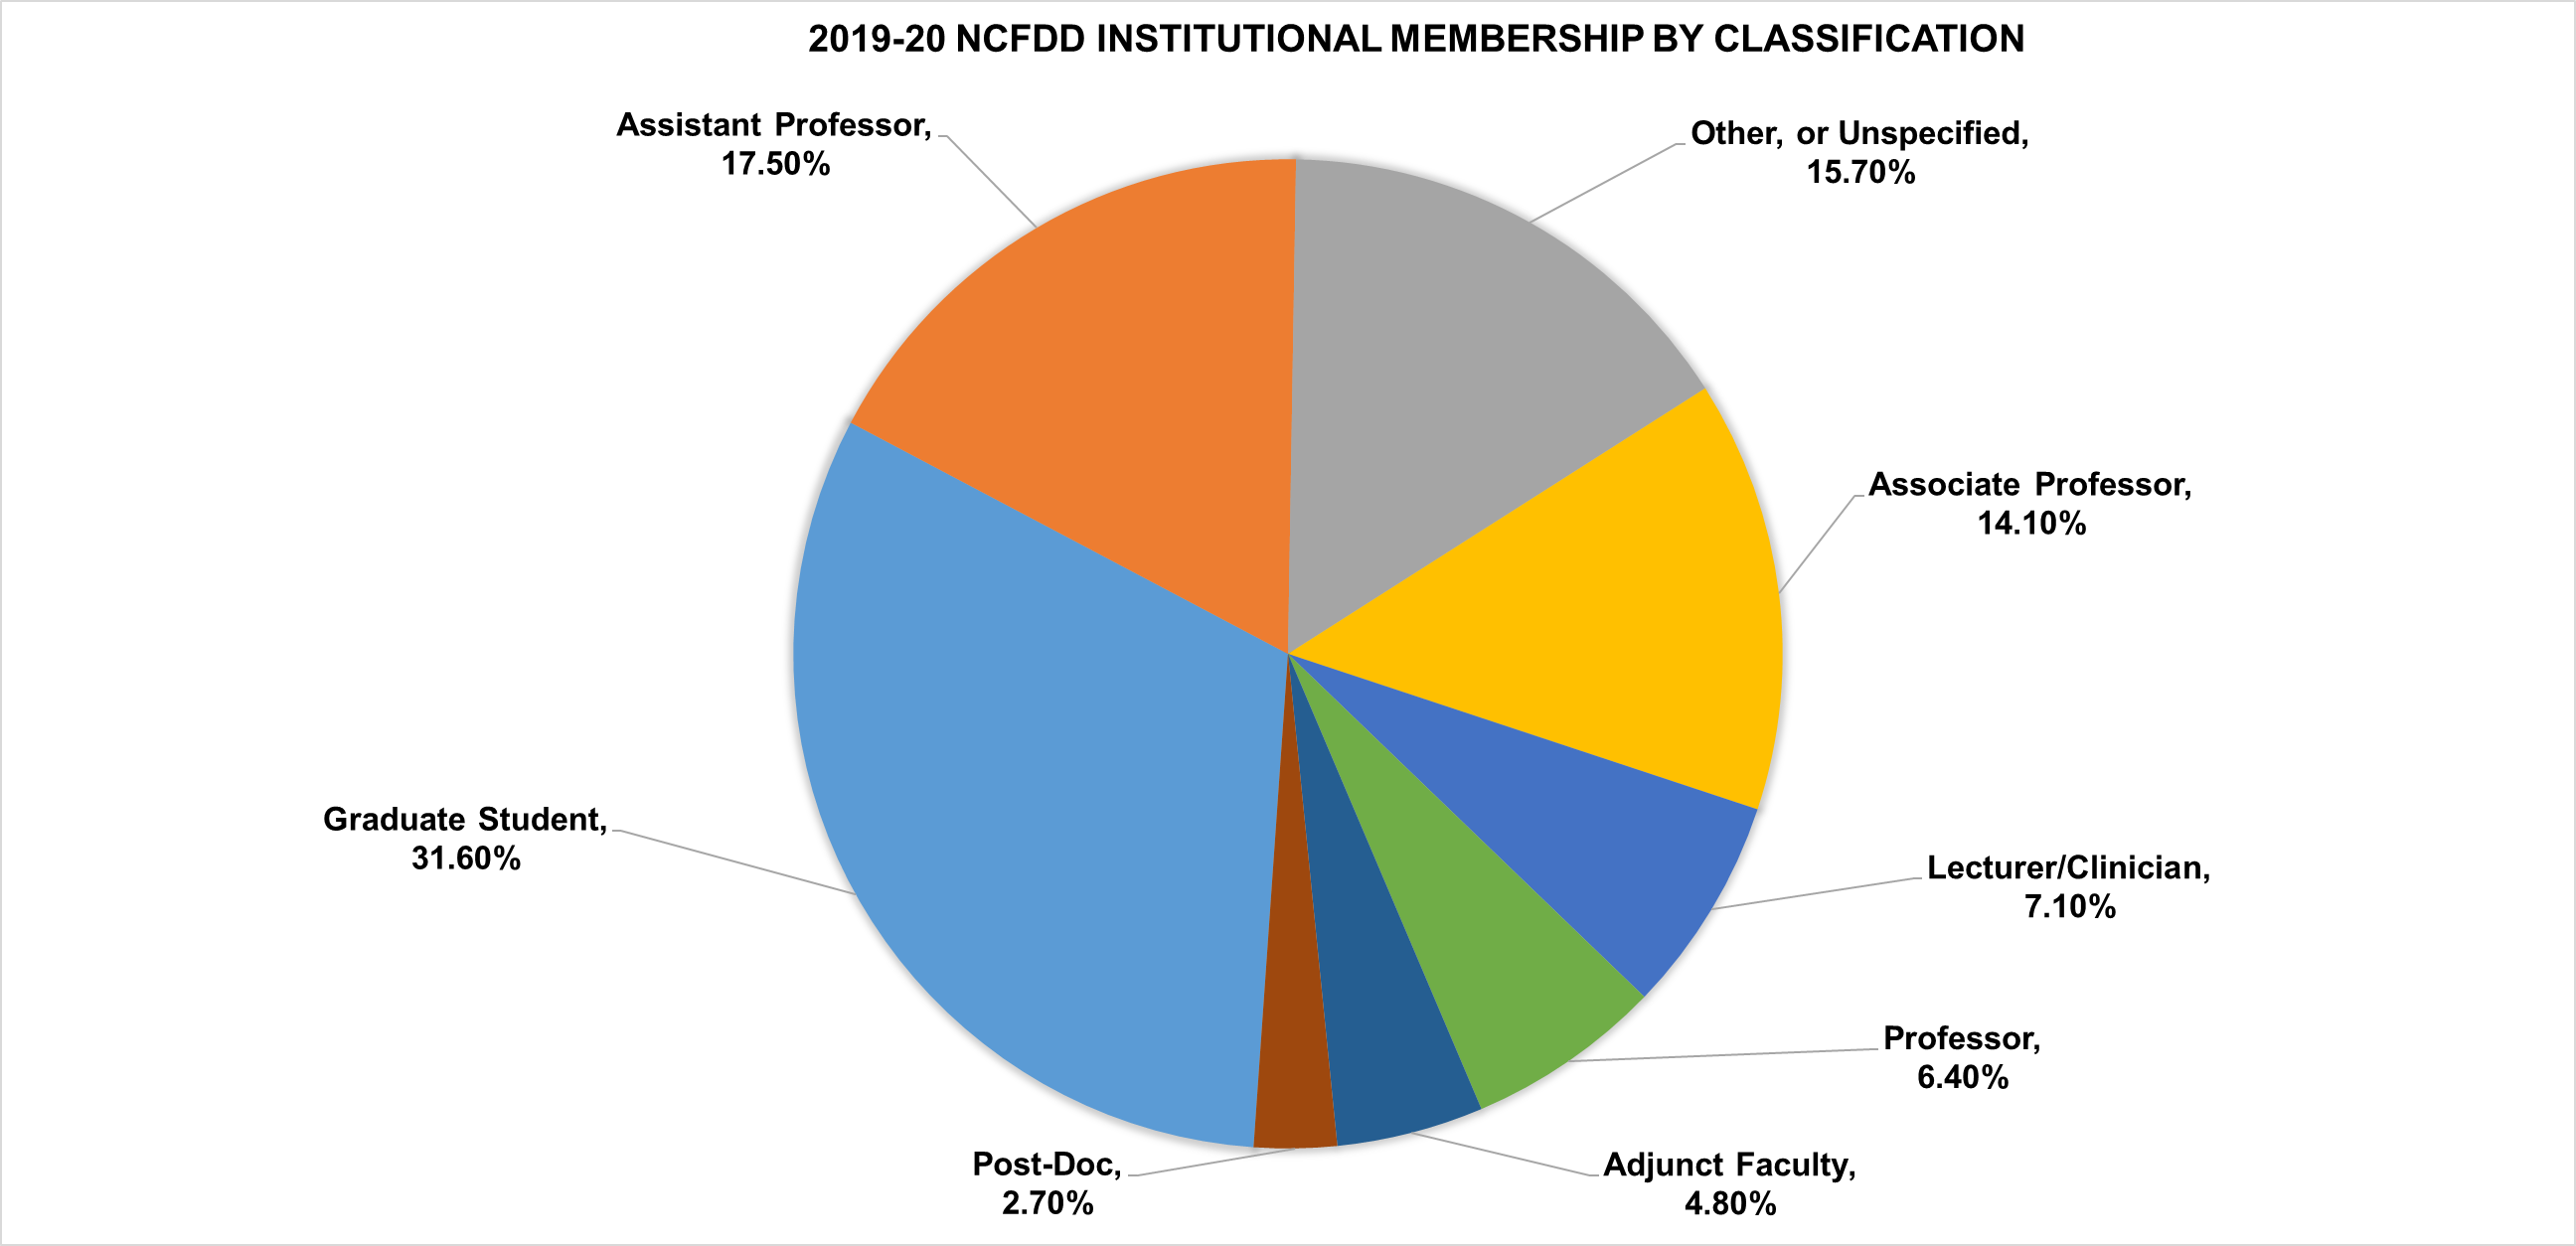 2019-20 NCFDD Institutional Membership by Classification